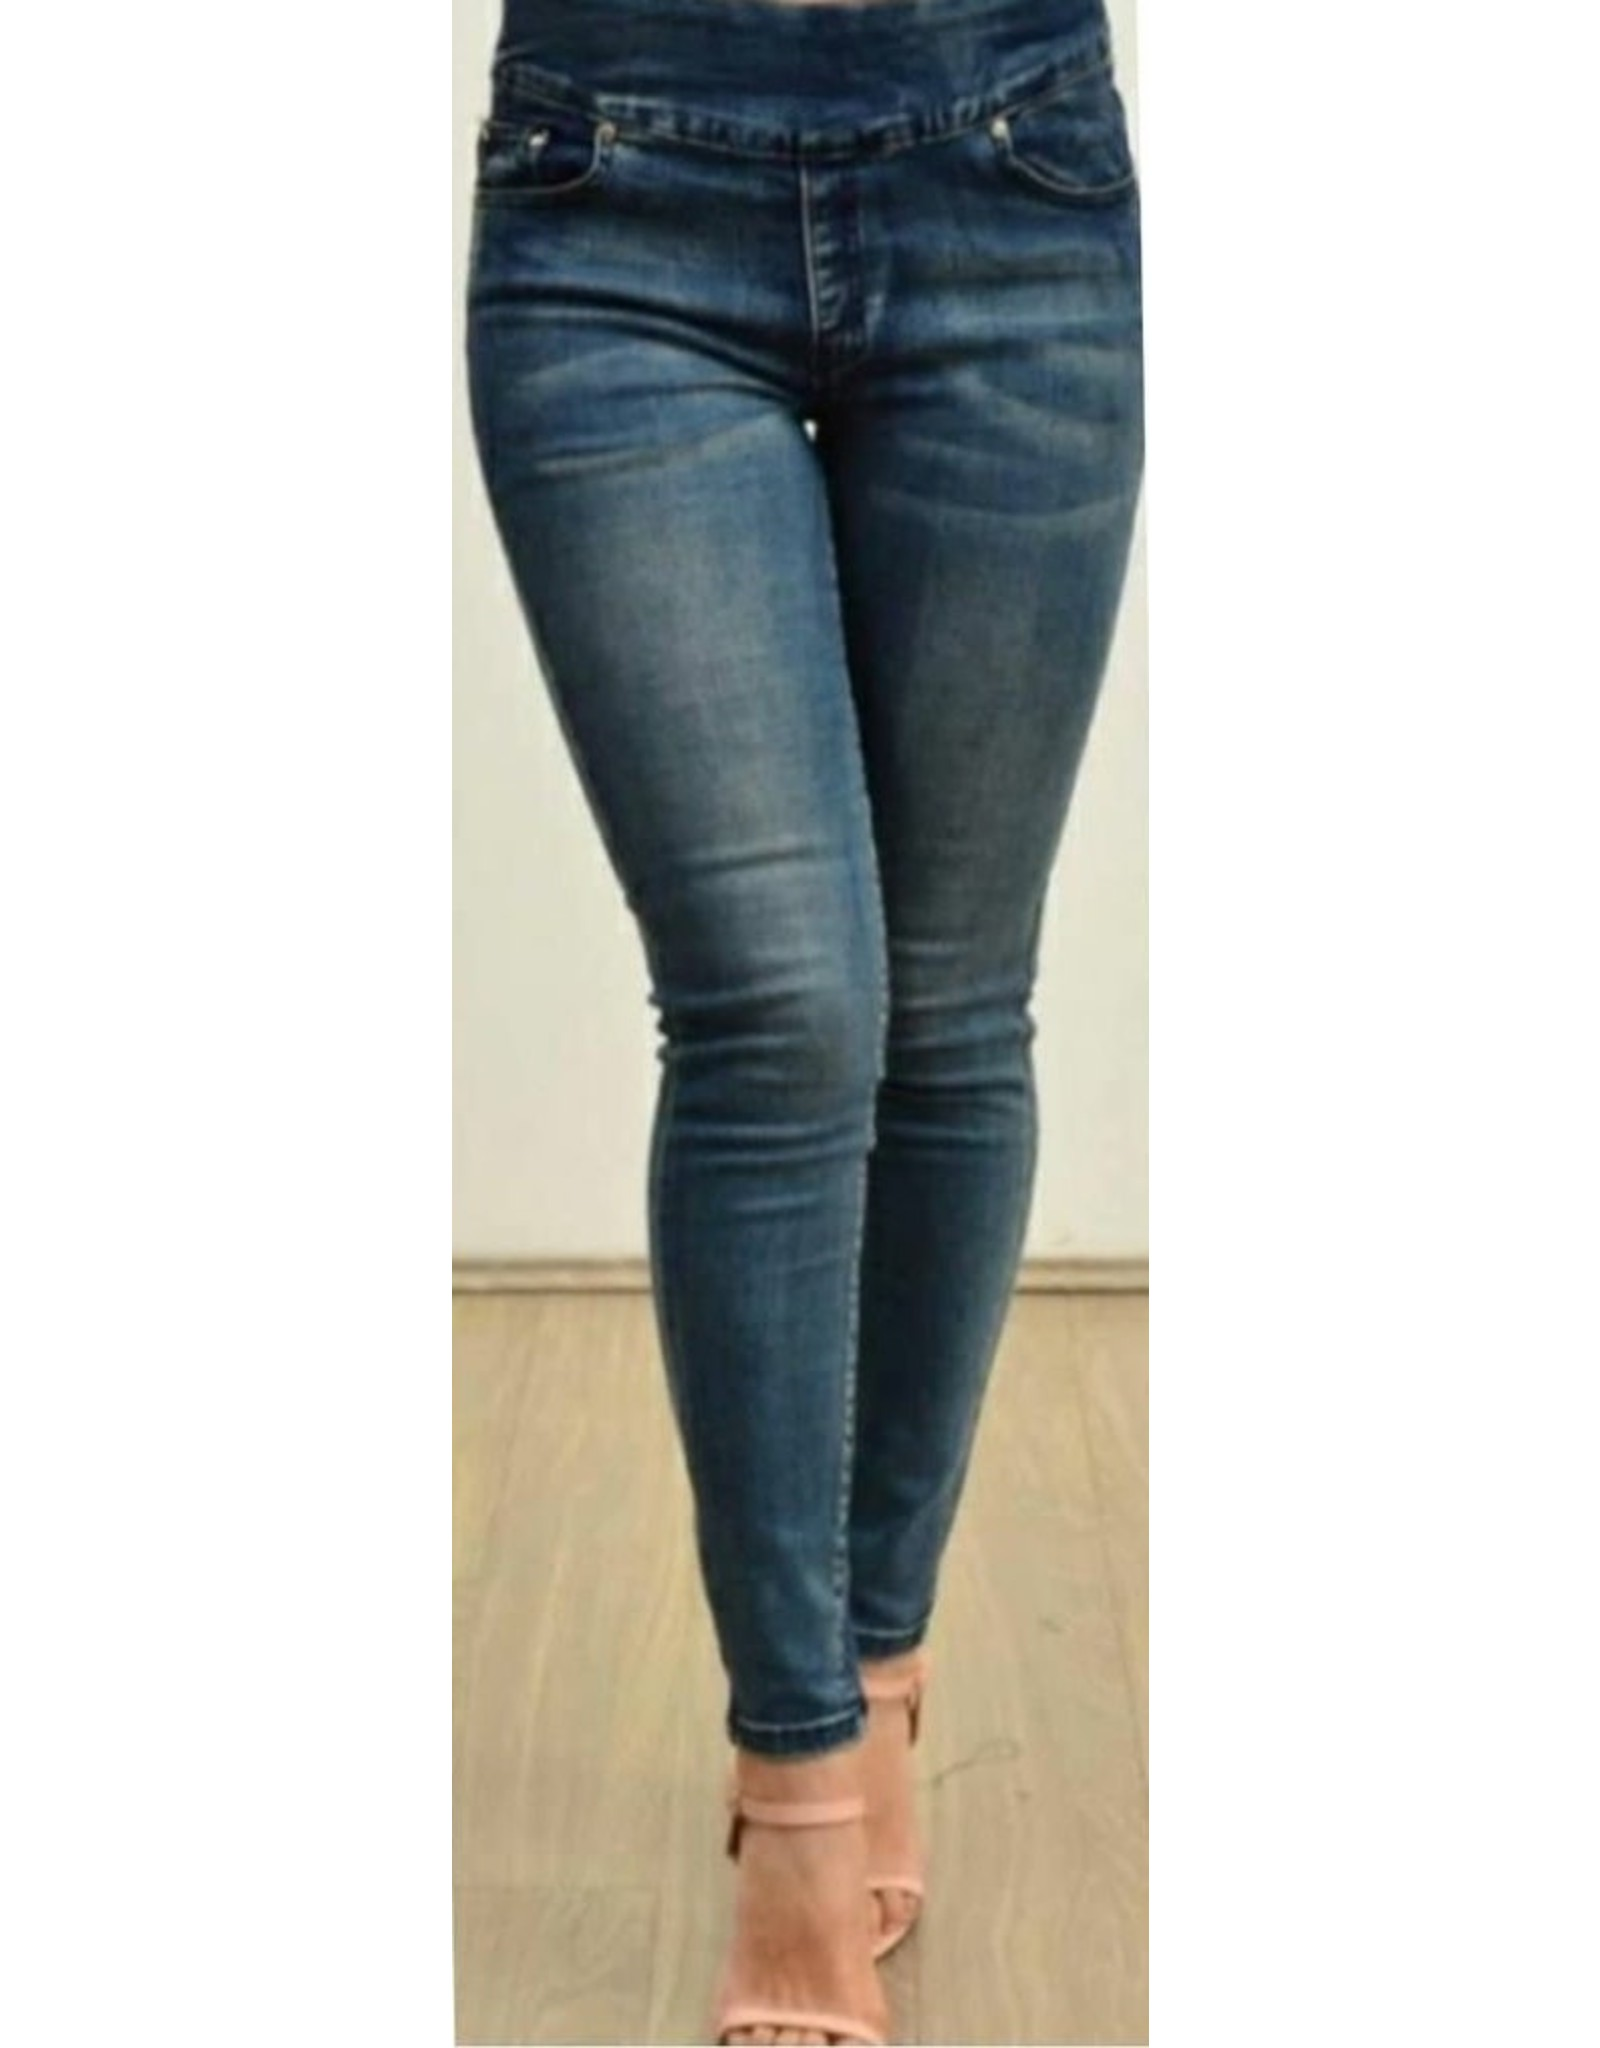 Willow Tree Denim Pull-on Jeans